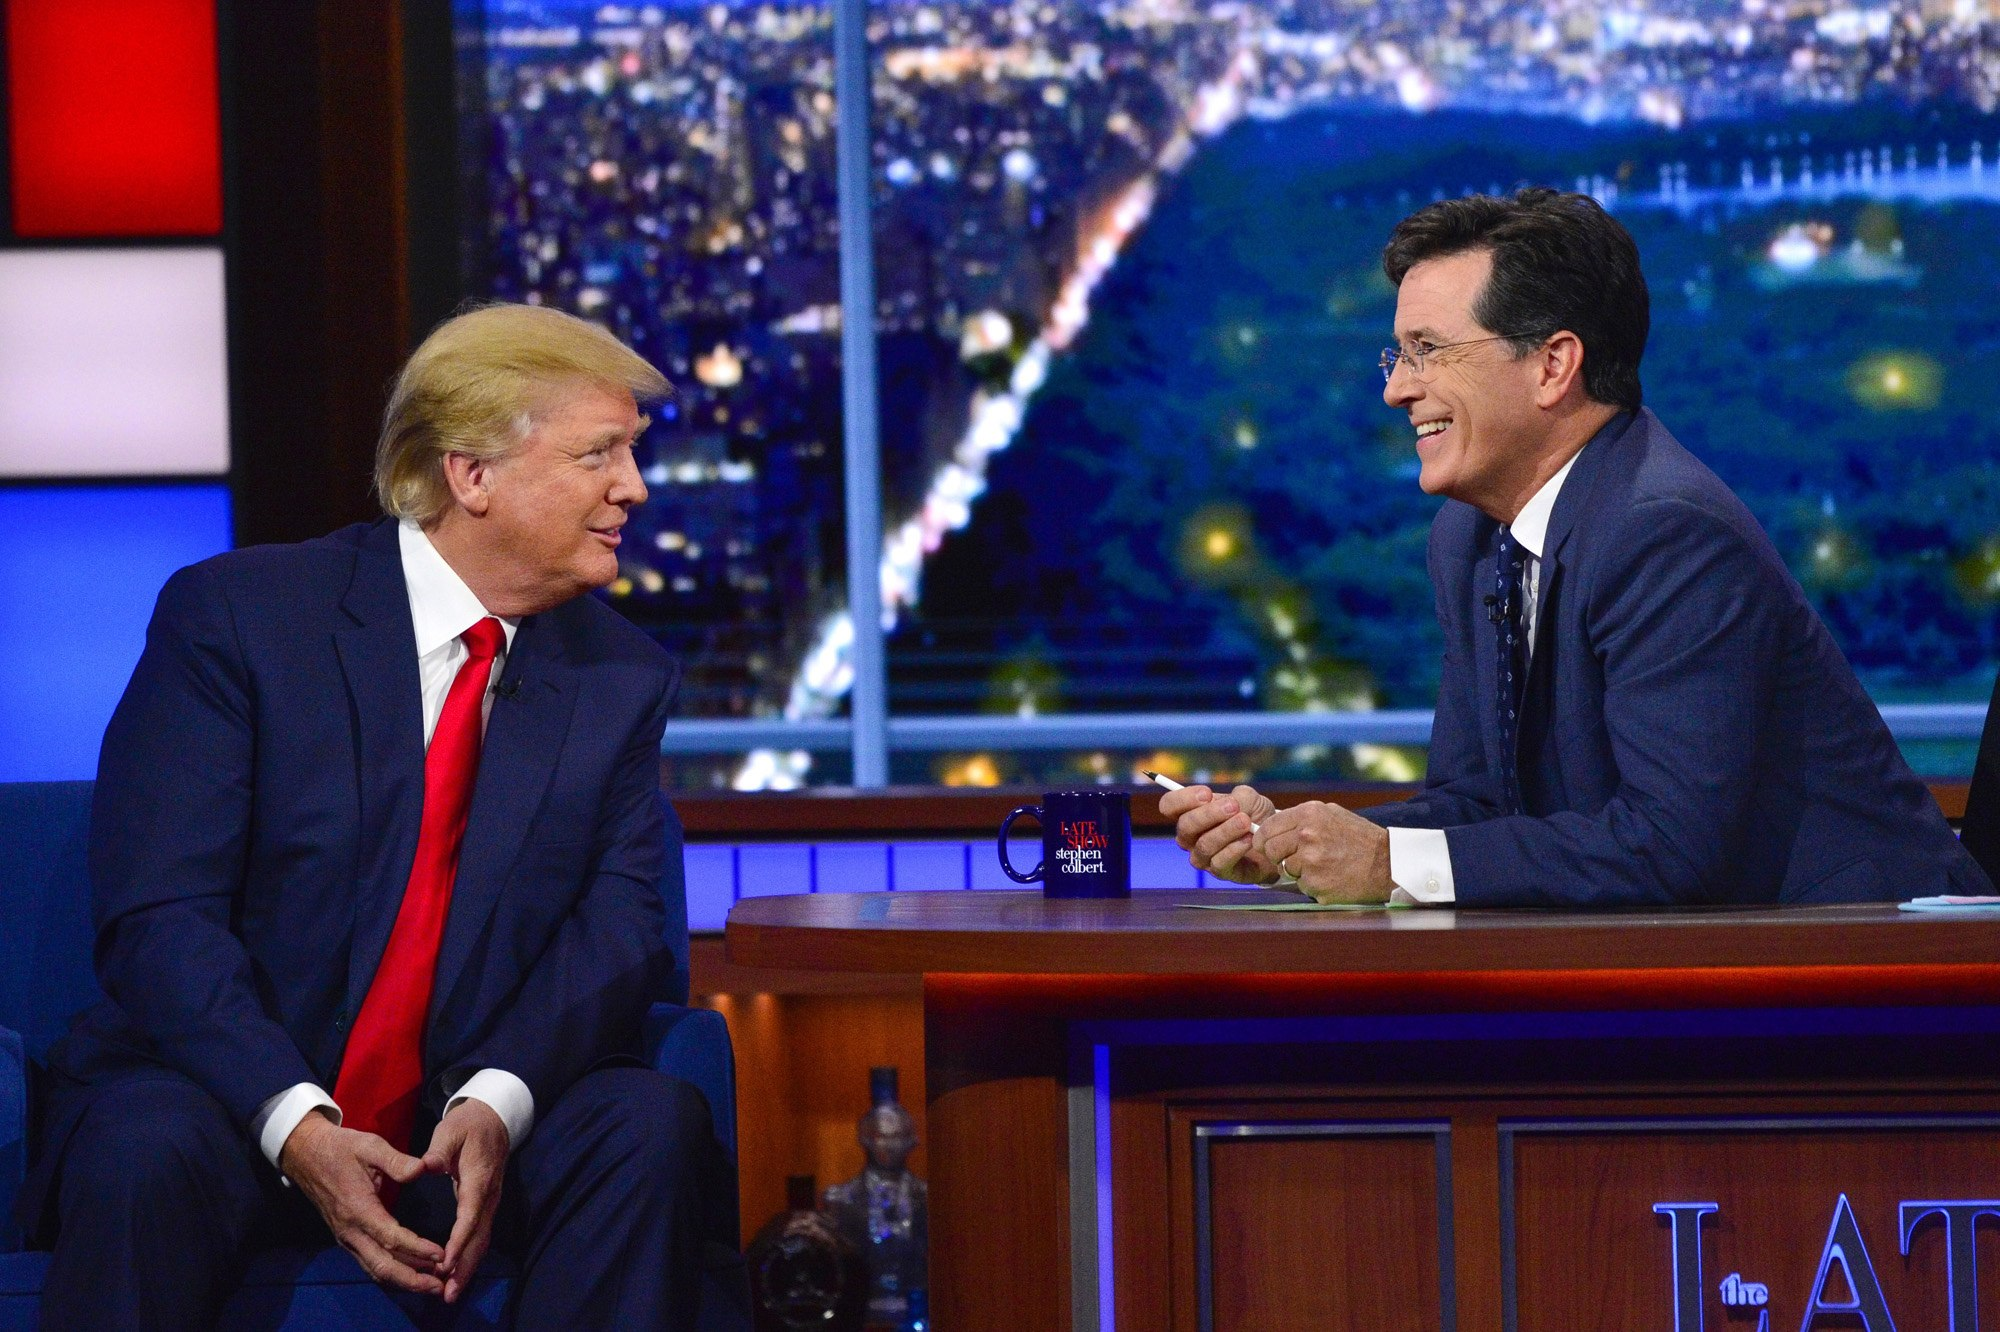 Donald Trump talking to Stephen Colbert